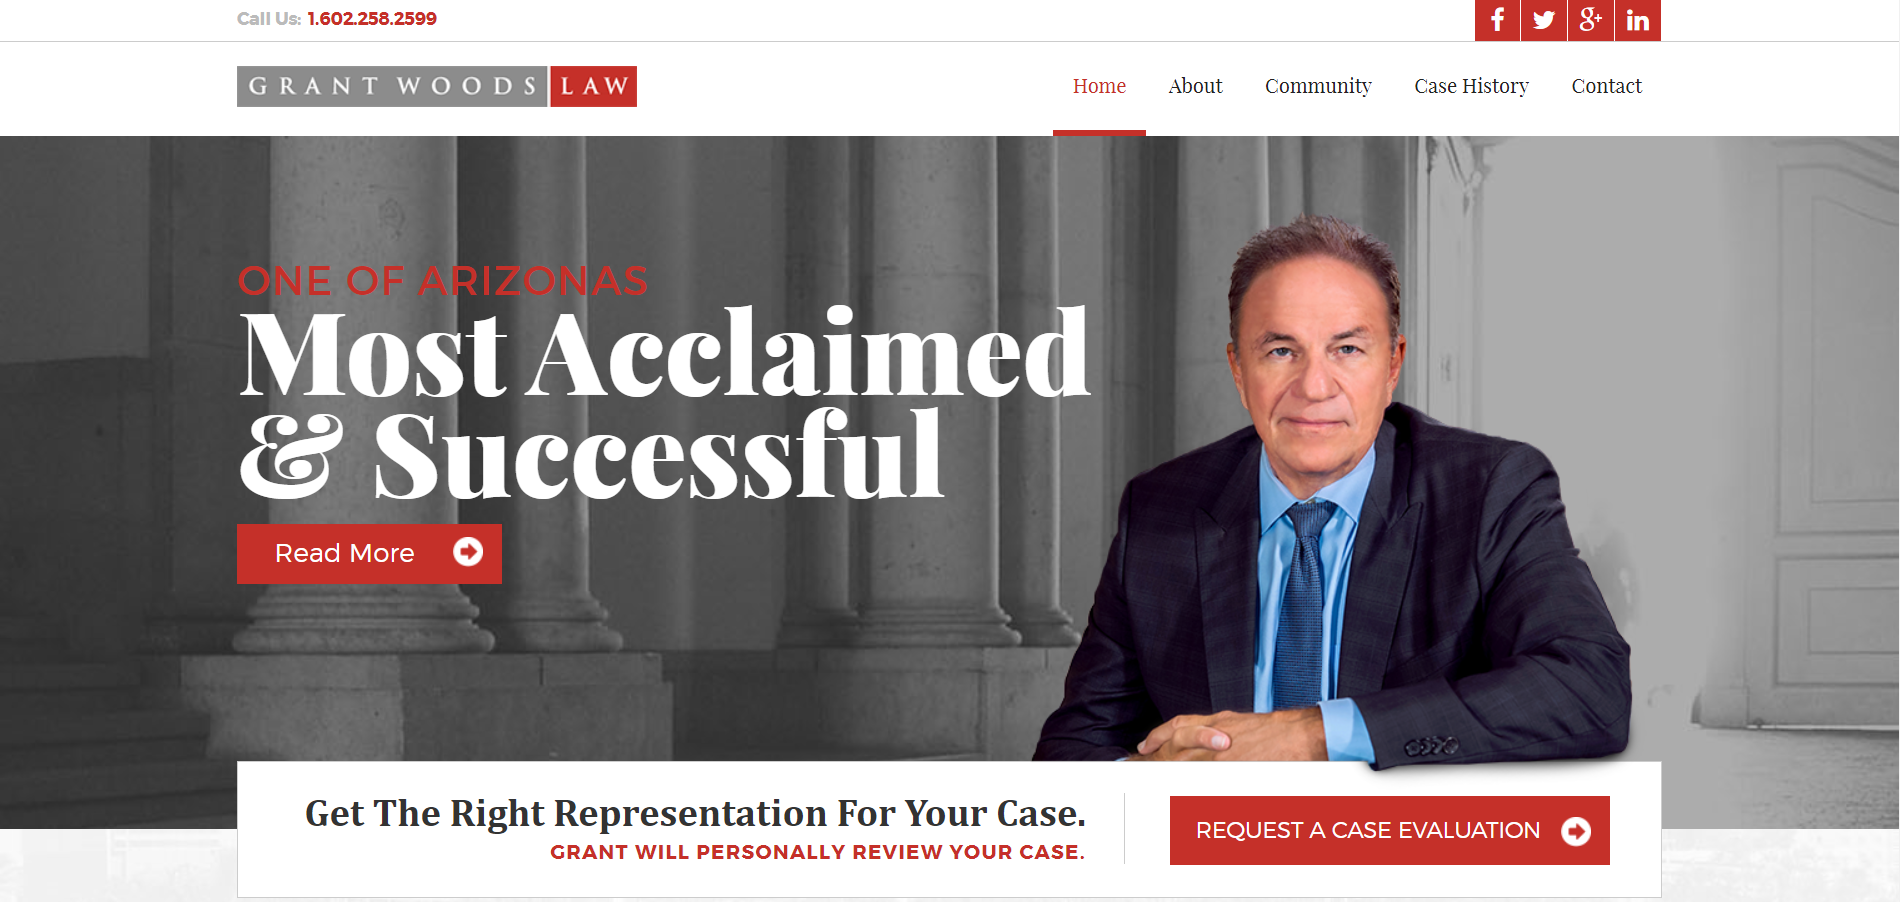 Grant Woods Law website with a face photo featured on the header